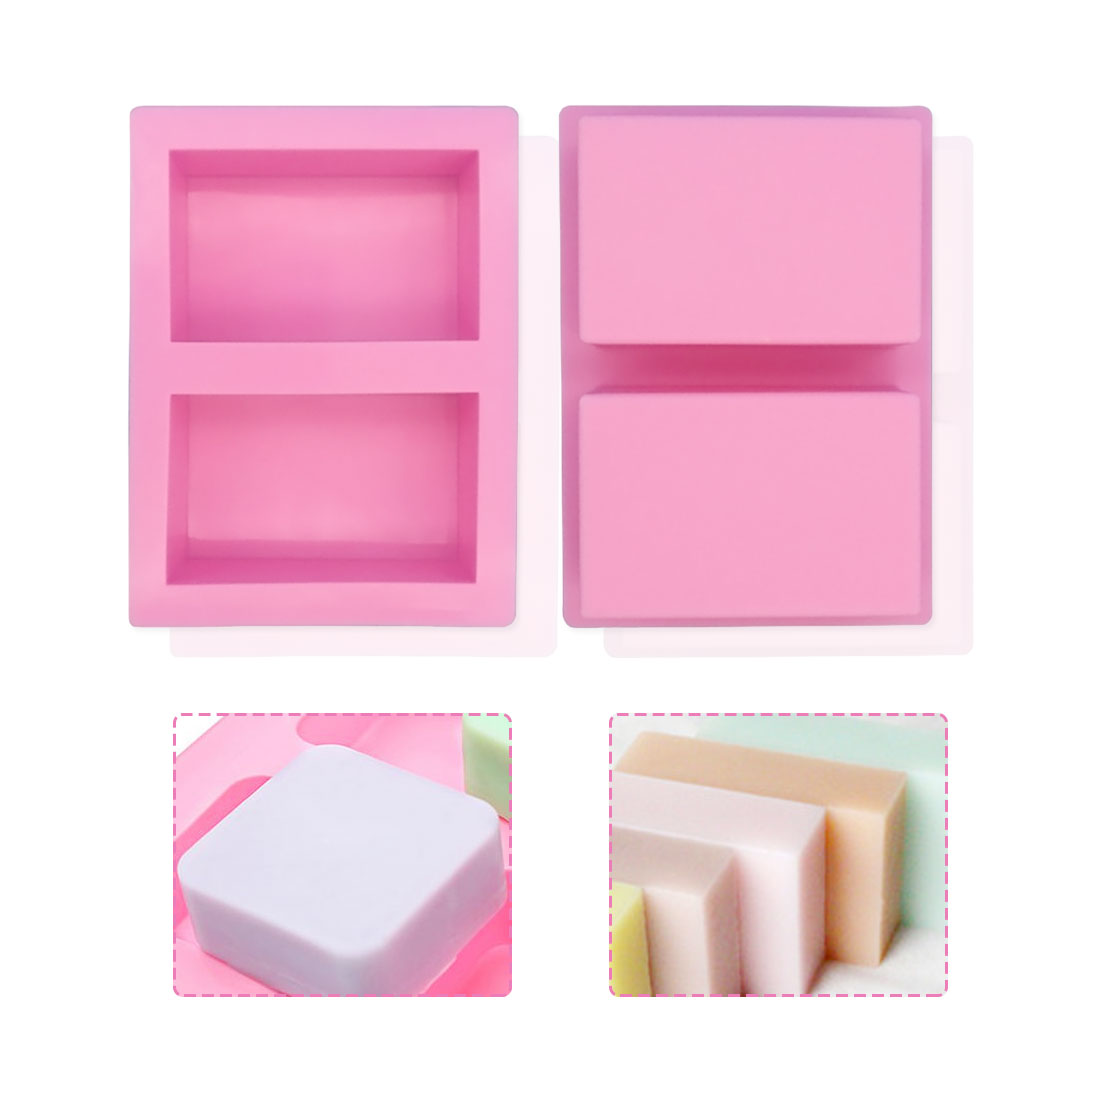 Purple Rectangle Silicone Mold Tree Shaped Hole Square Soap Mold Arts And Crafts Chocolate Cake Molding Hand Making Tools